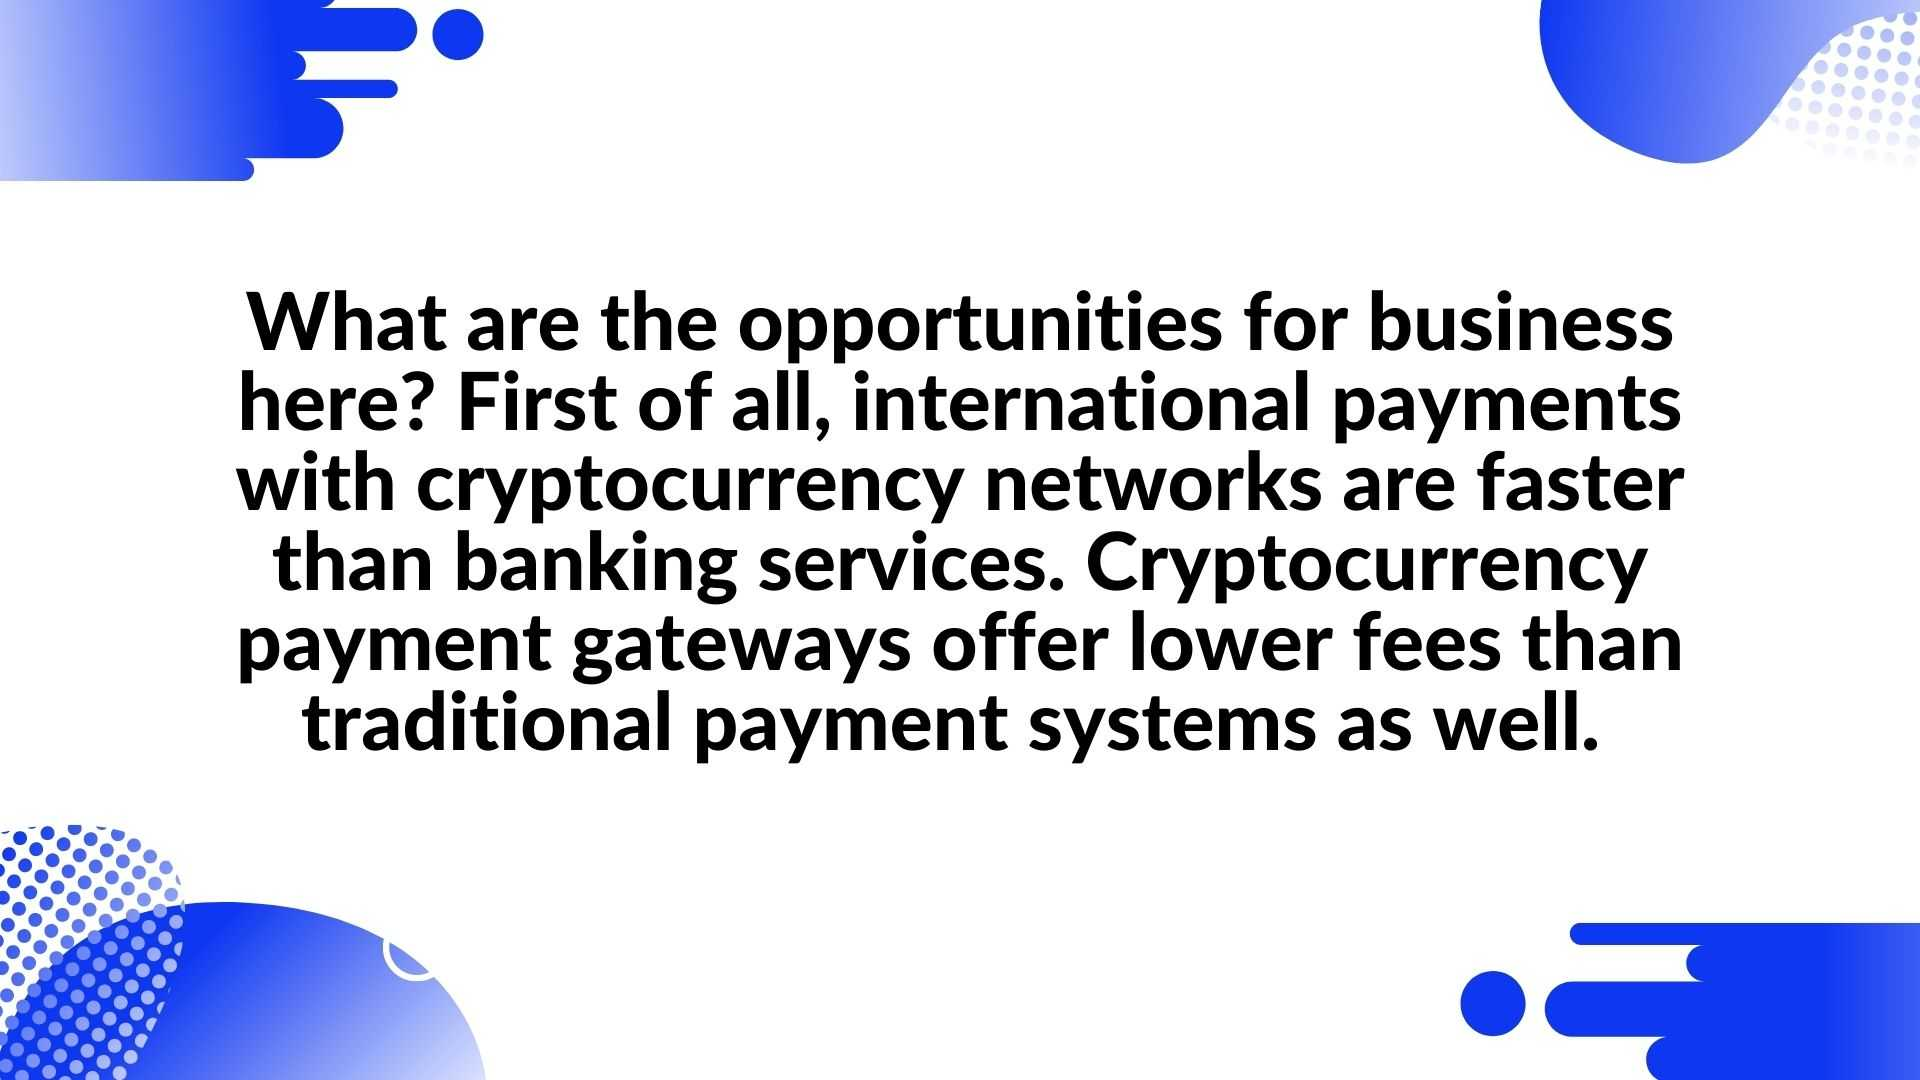 Opportunities for business - cryptocurrency